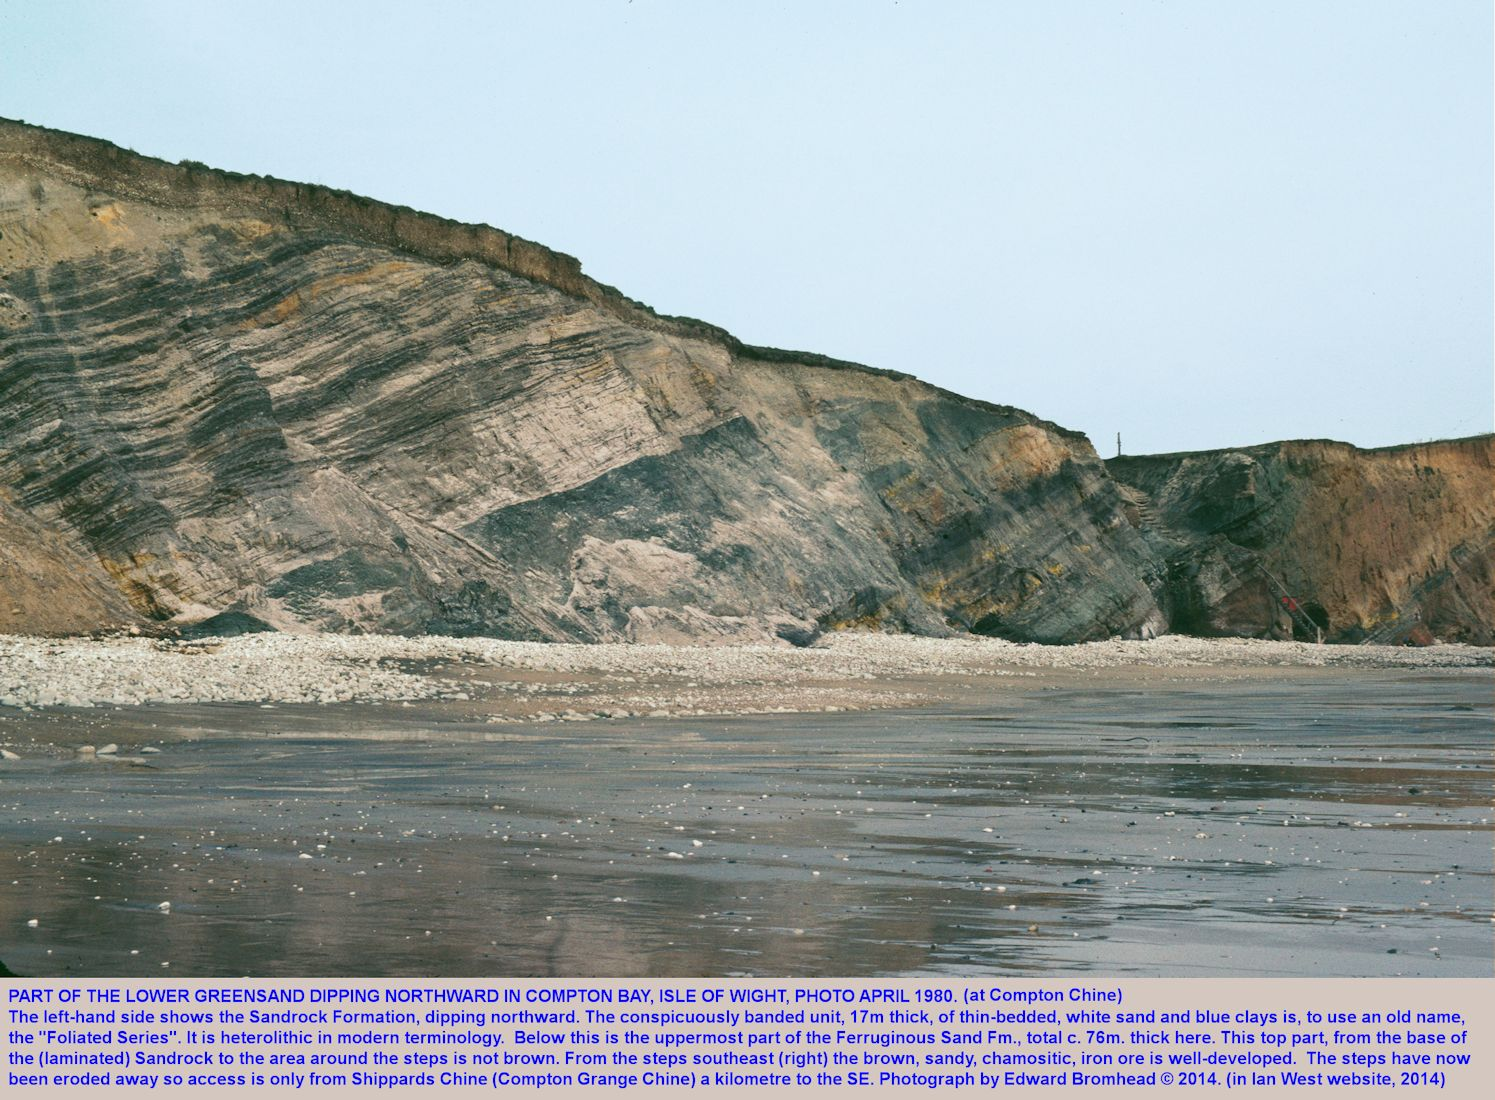 The Lower Greensand, Sandrock Formation and part of the Ferruginous Sands Formation, at Compton Bay, Isle of Wight, photograph April 1980 by Edward Bromhead